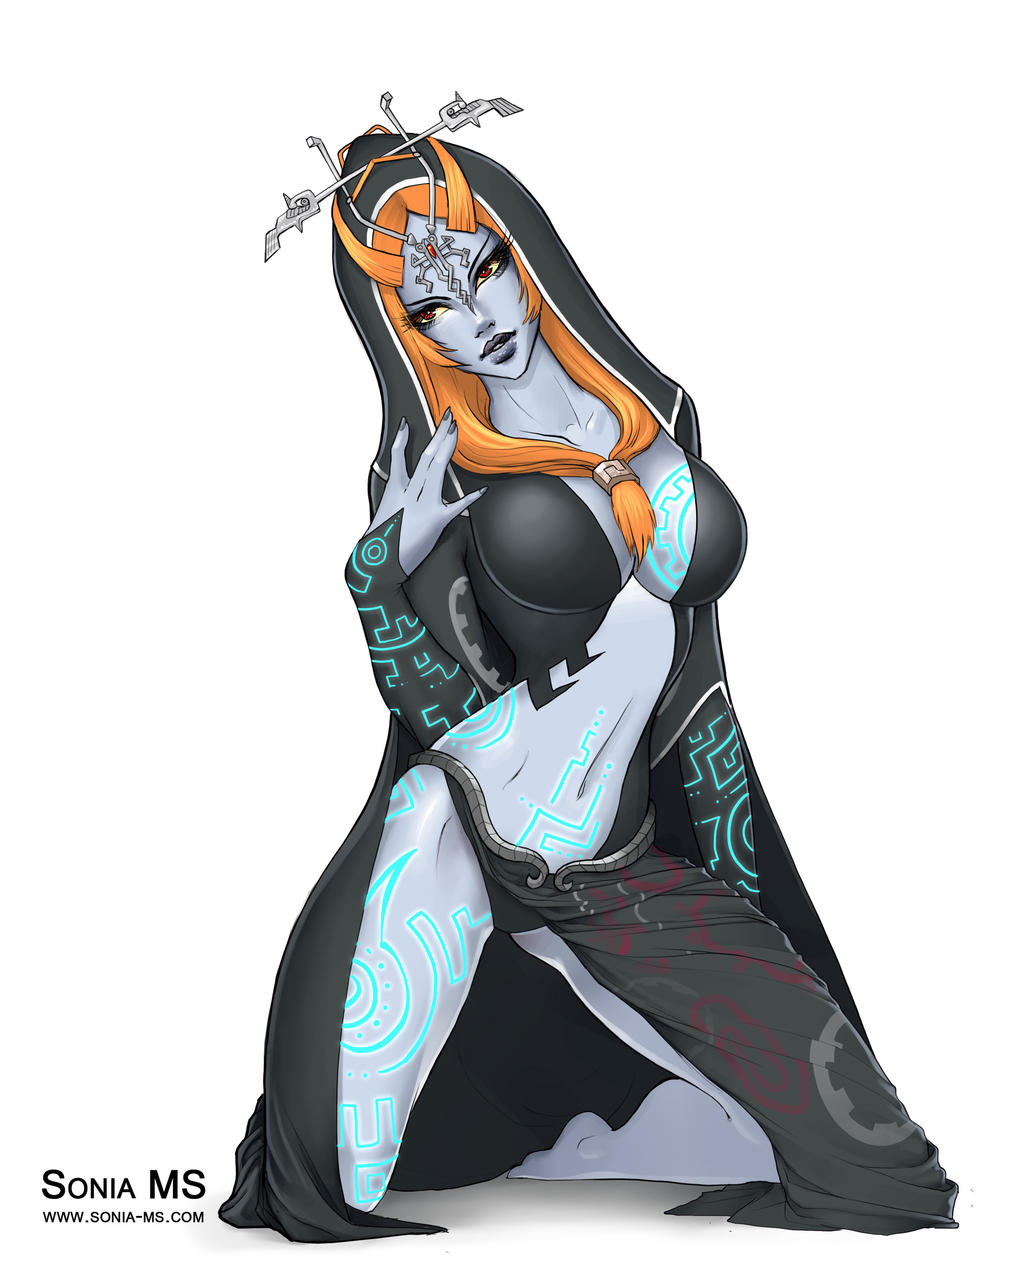 LOZ] Midna by Seuyan on DeviantArt